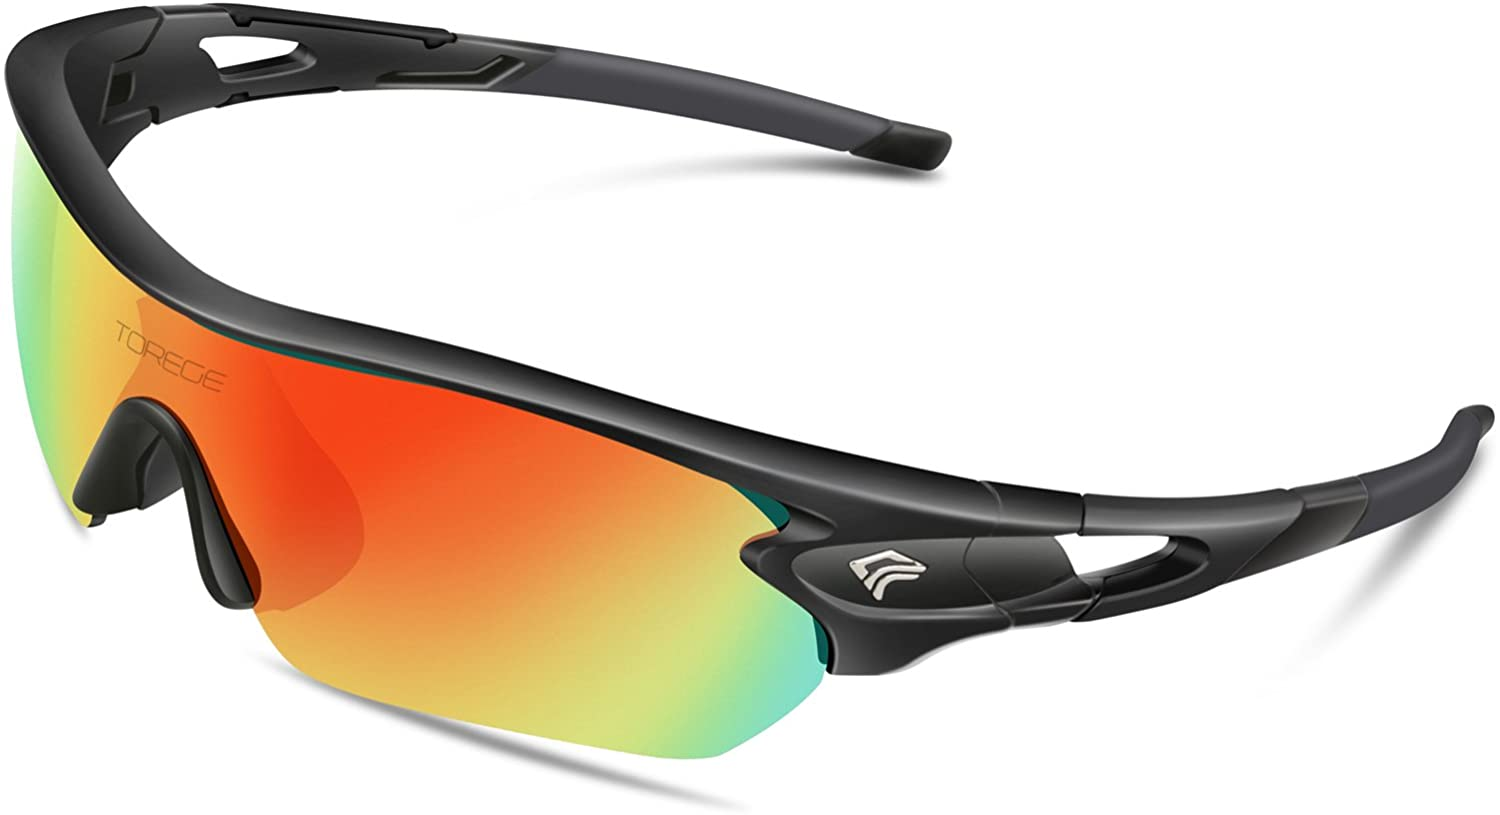 Torege Polarized Sports Sunglasses With 3 Interchangeable Lenes for Men Women Cycling Running Driving Fishing Golf Baseball Glasses TR002 Upgrade(Black&Black Tips&Rainbow Lens): Clothing